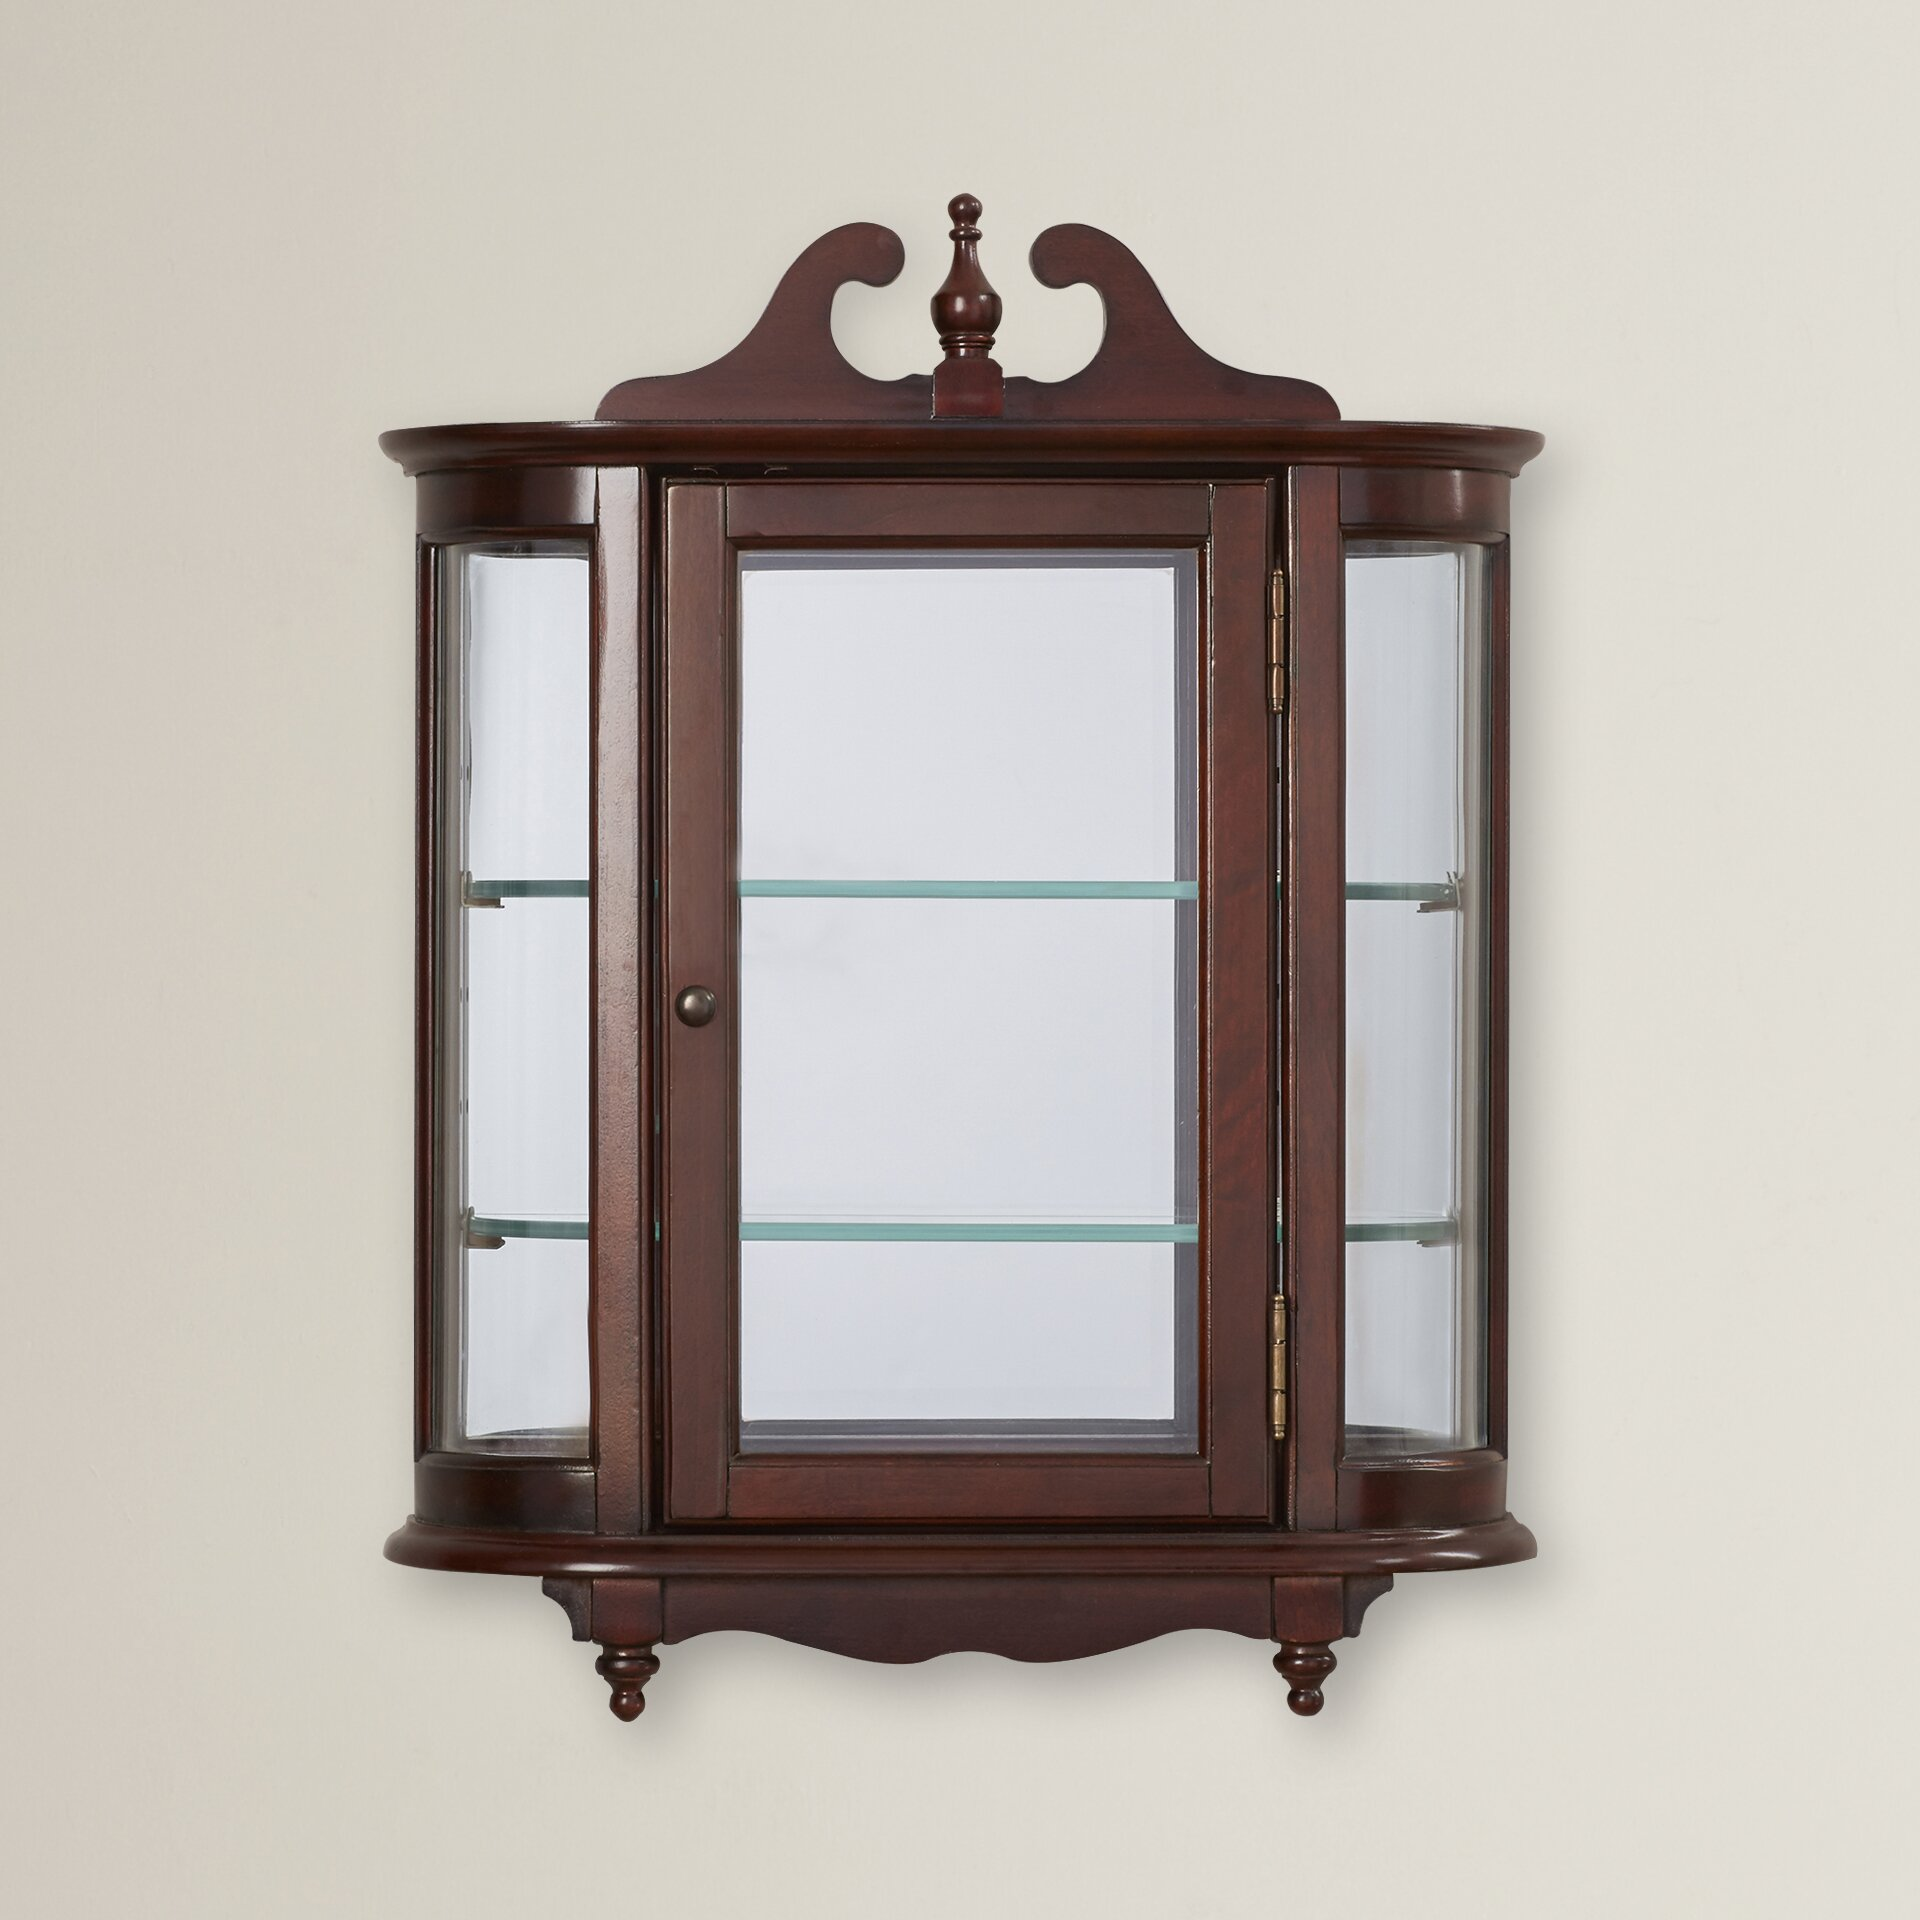 rosalind wheeler cheshire wall mounted curio cabinet. Black Bedroom Furniture Sets. Home Design Ideas